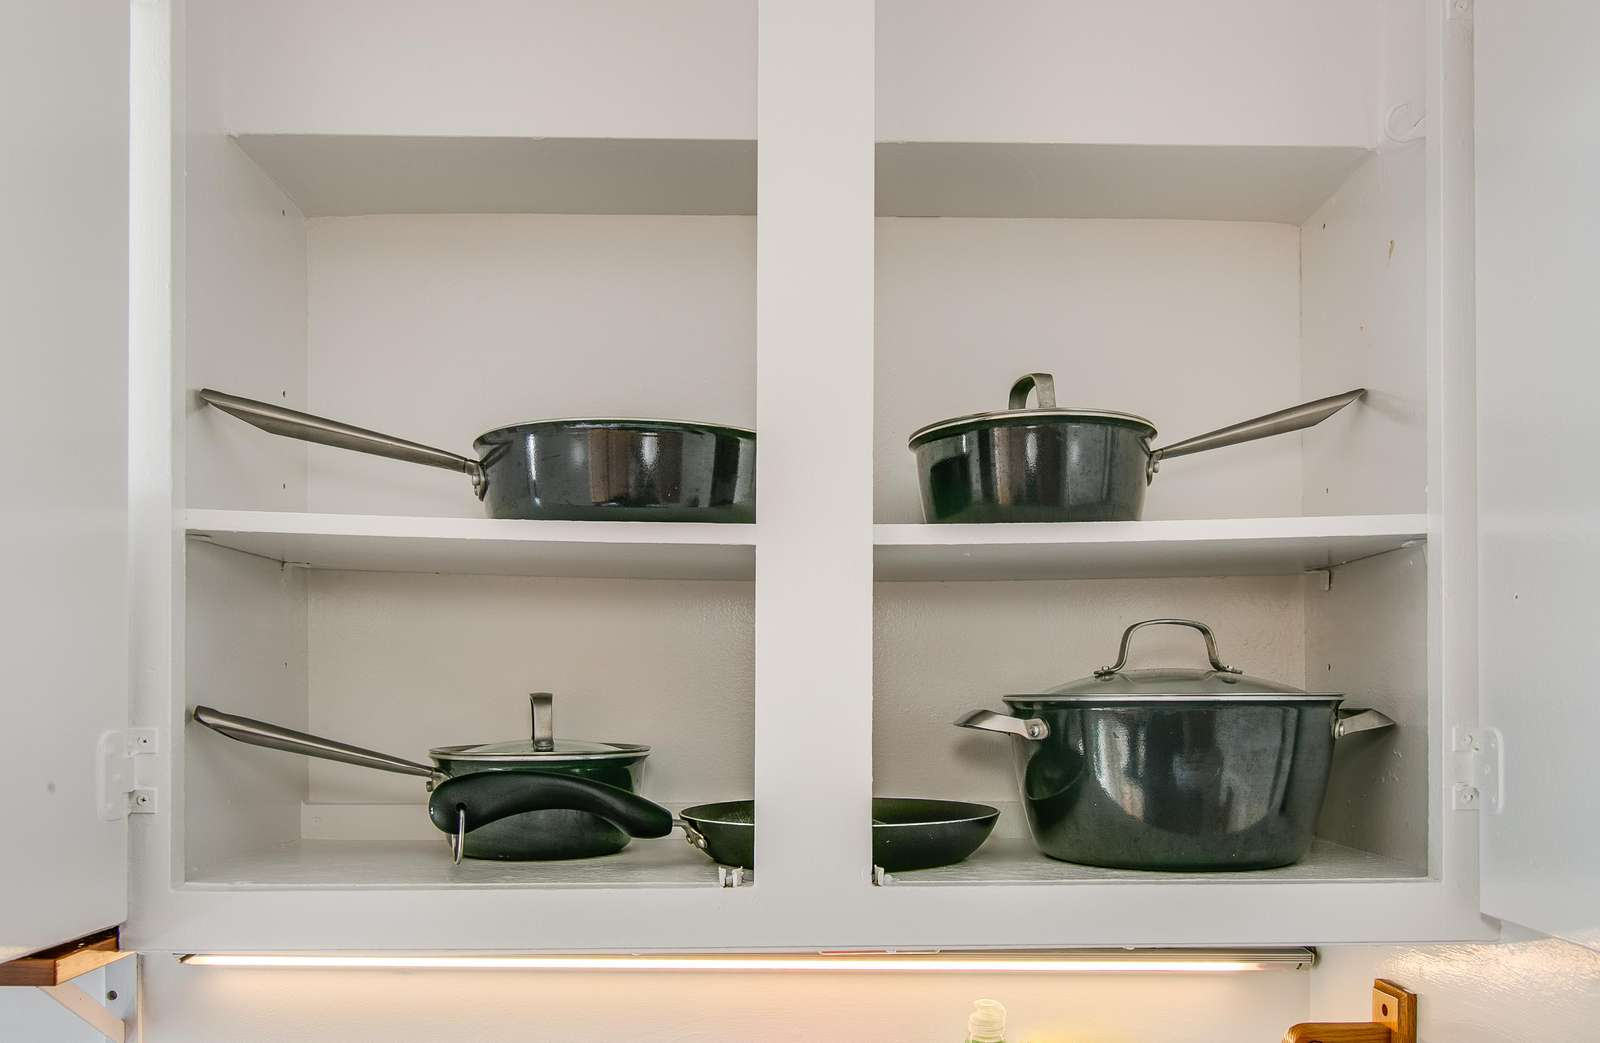 Ample pots and pans